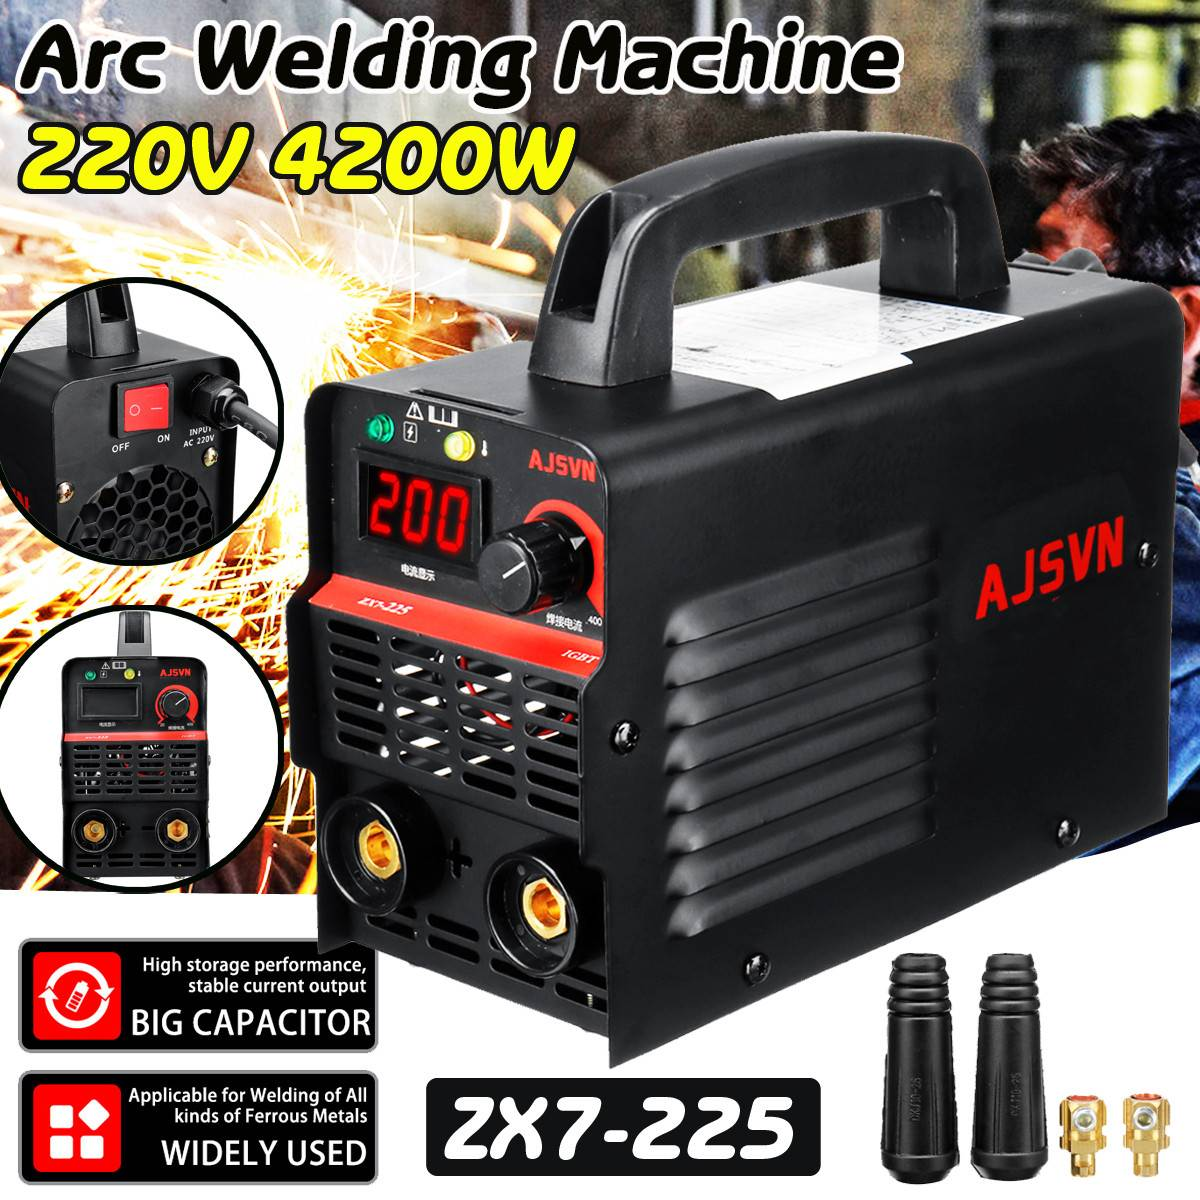 New 220V Adjustable 20A-225A 4200W Handheld IGBT Inverter Arc Welder-Welding Machine Digital Display Mini Portable Welding Tool